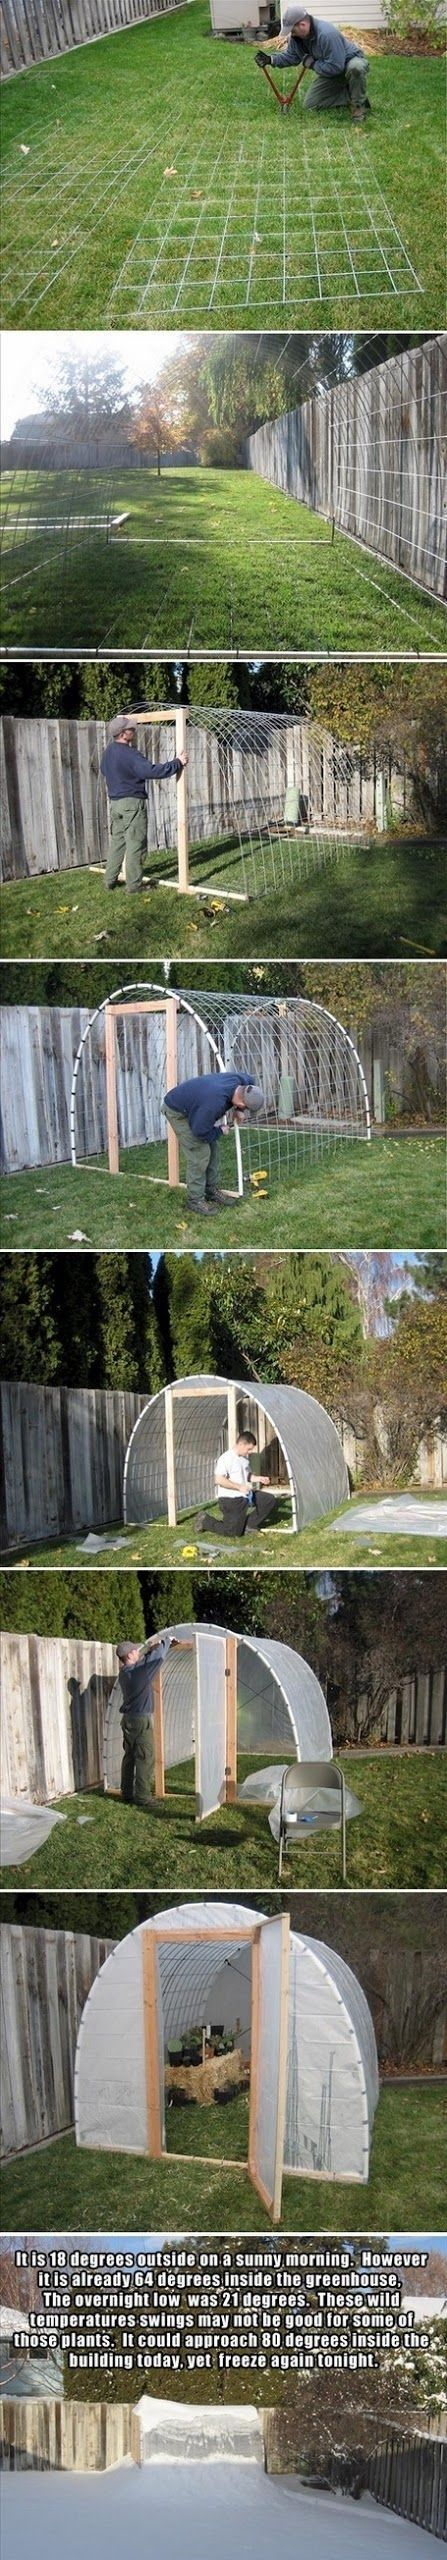 Chicken Coop - Make Your Own Greenhouse, DIY Greenhouse from PVC and cattle panel Building a chicken coop does not have to be tricky nor does it have to set you back a ton of scratch. #chickencoopdiy